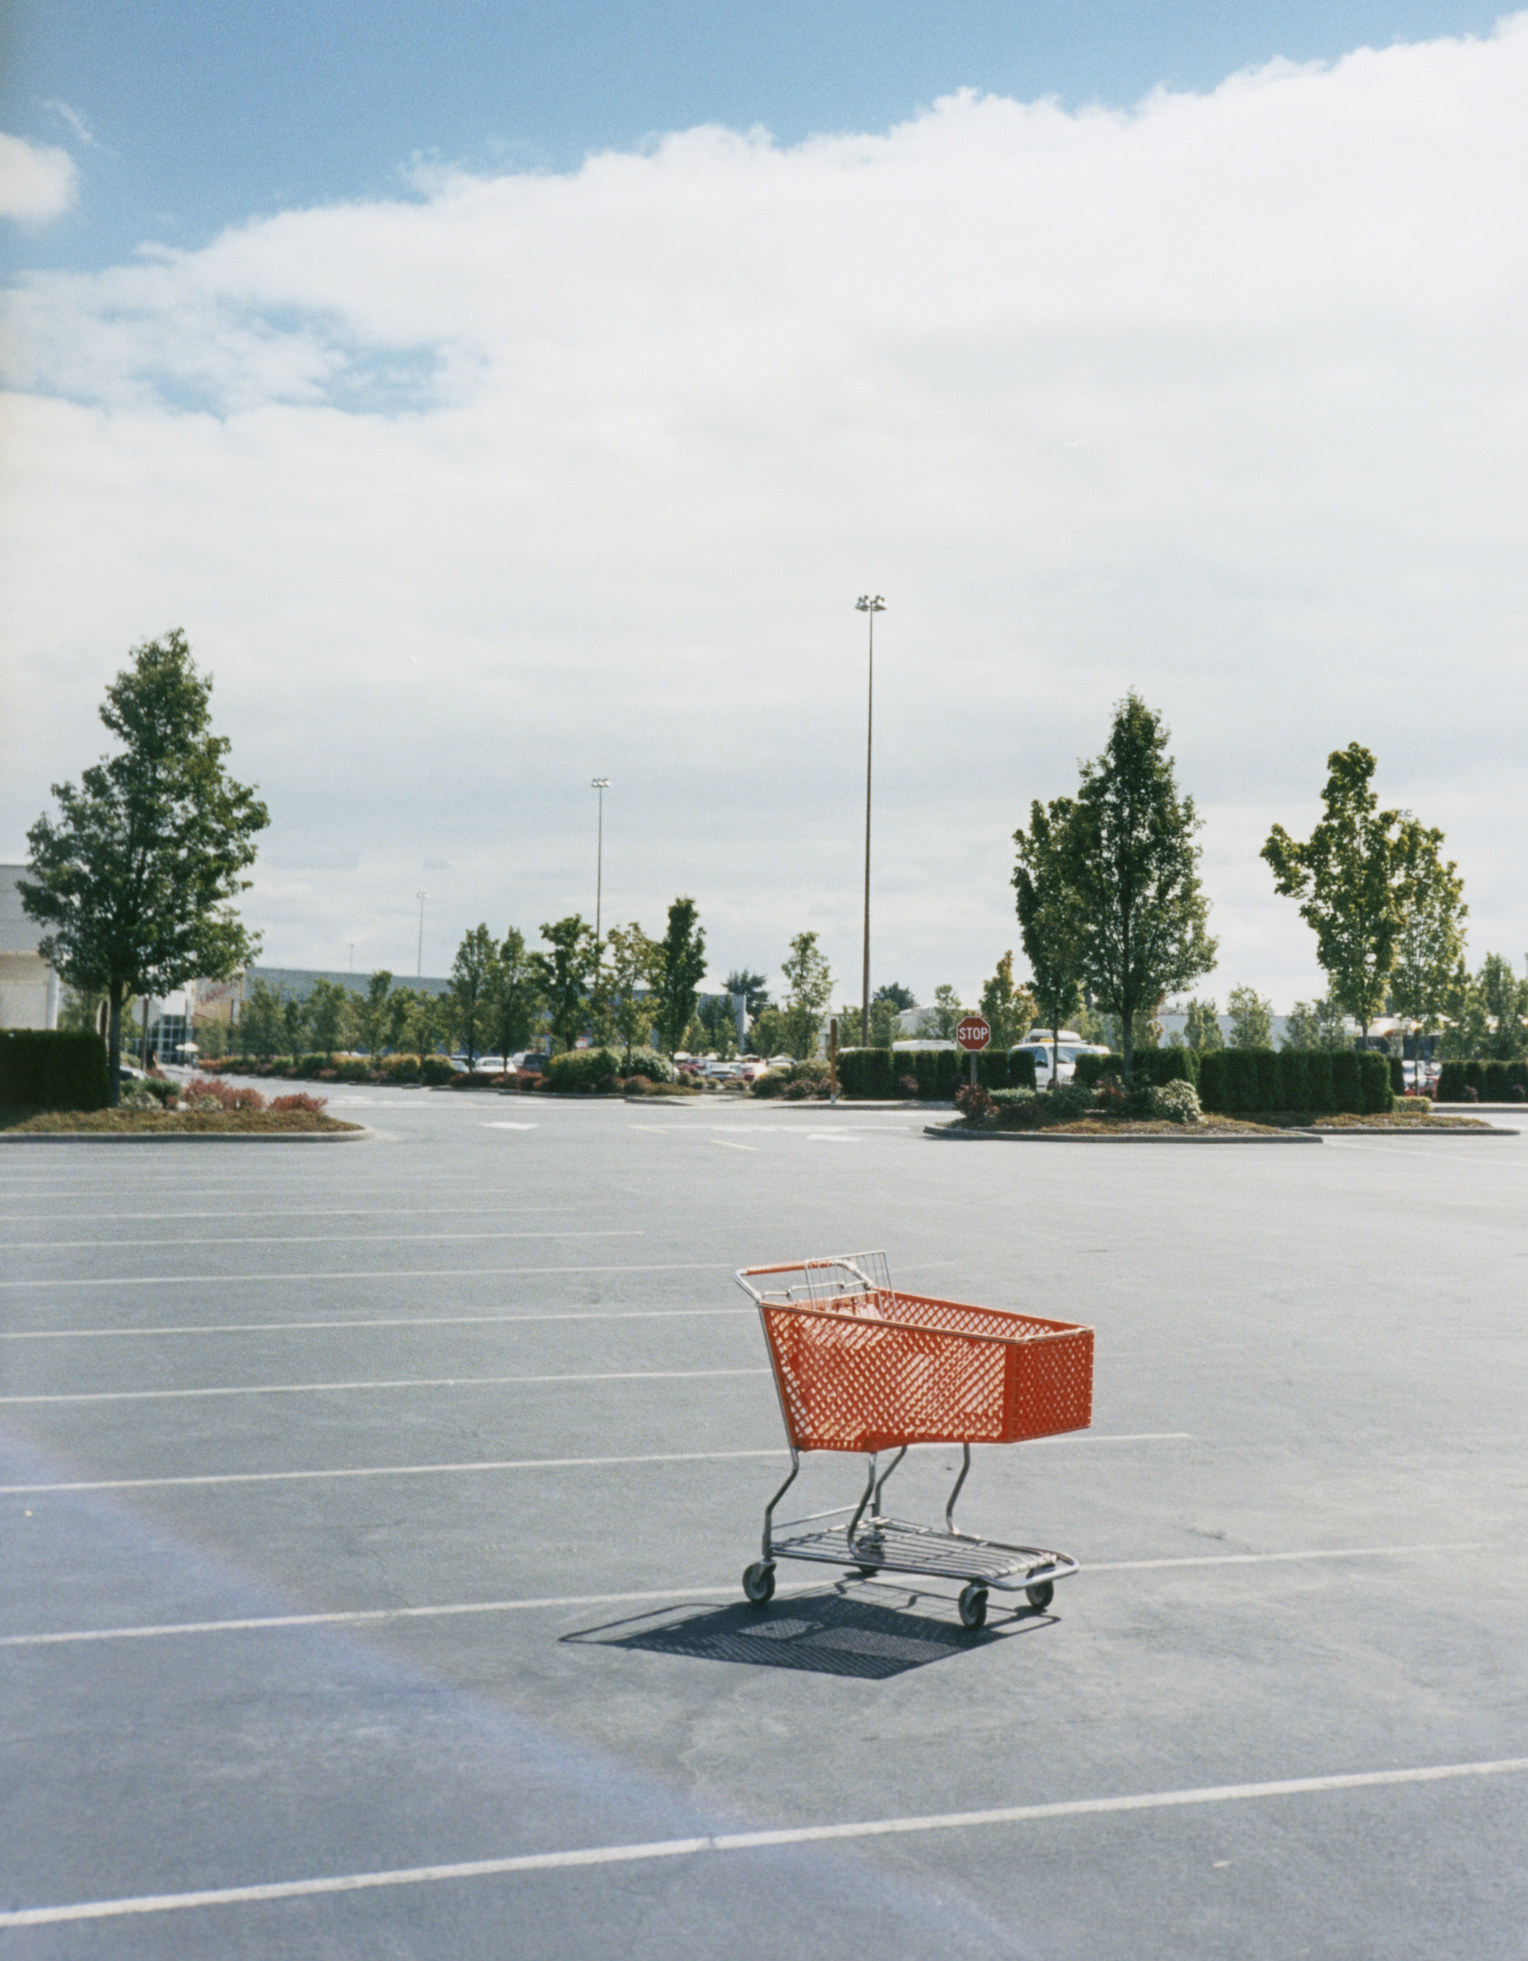 Lone shopping cart in a parking lot